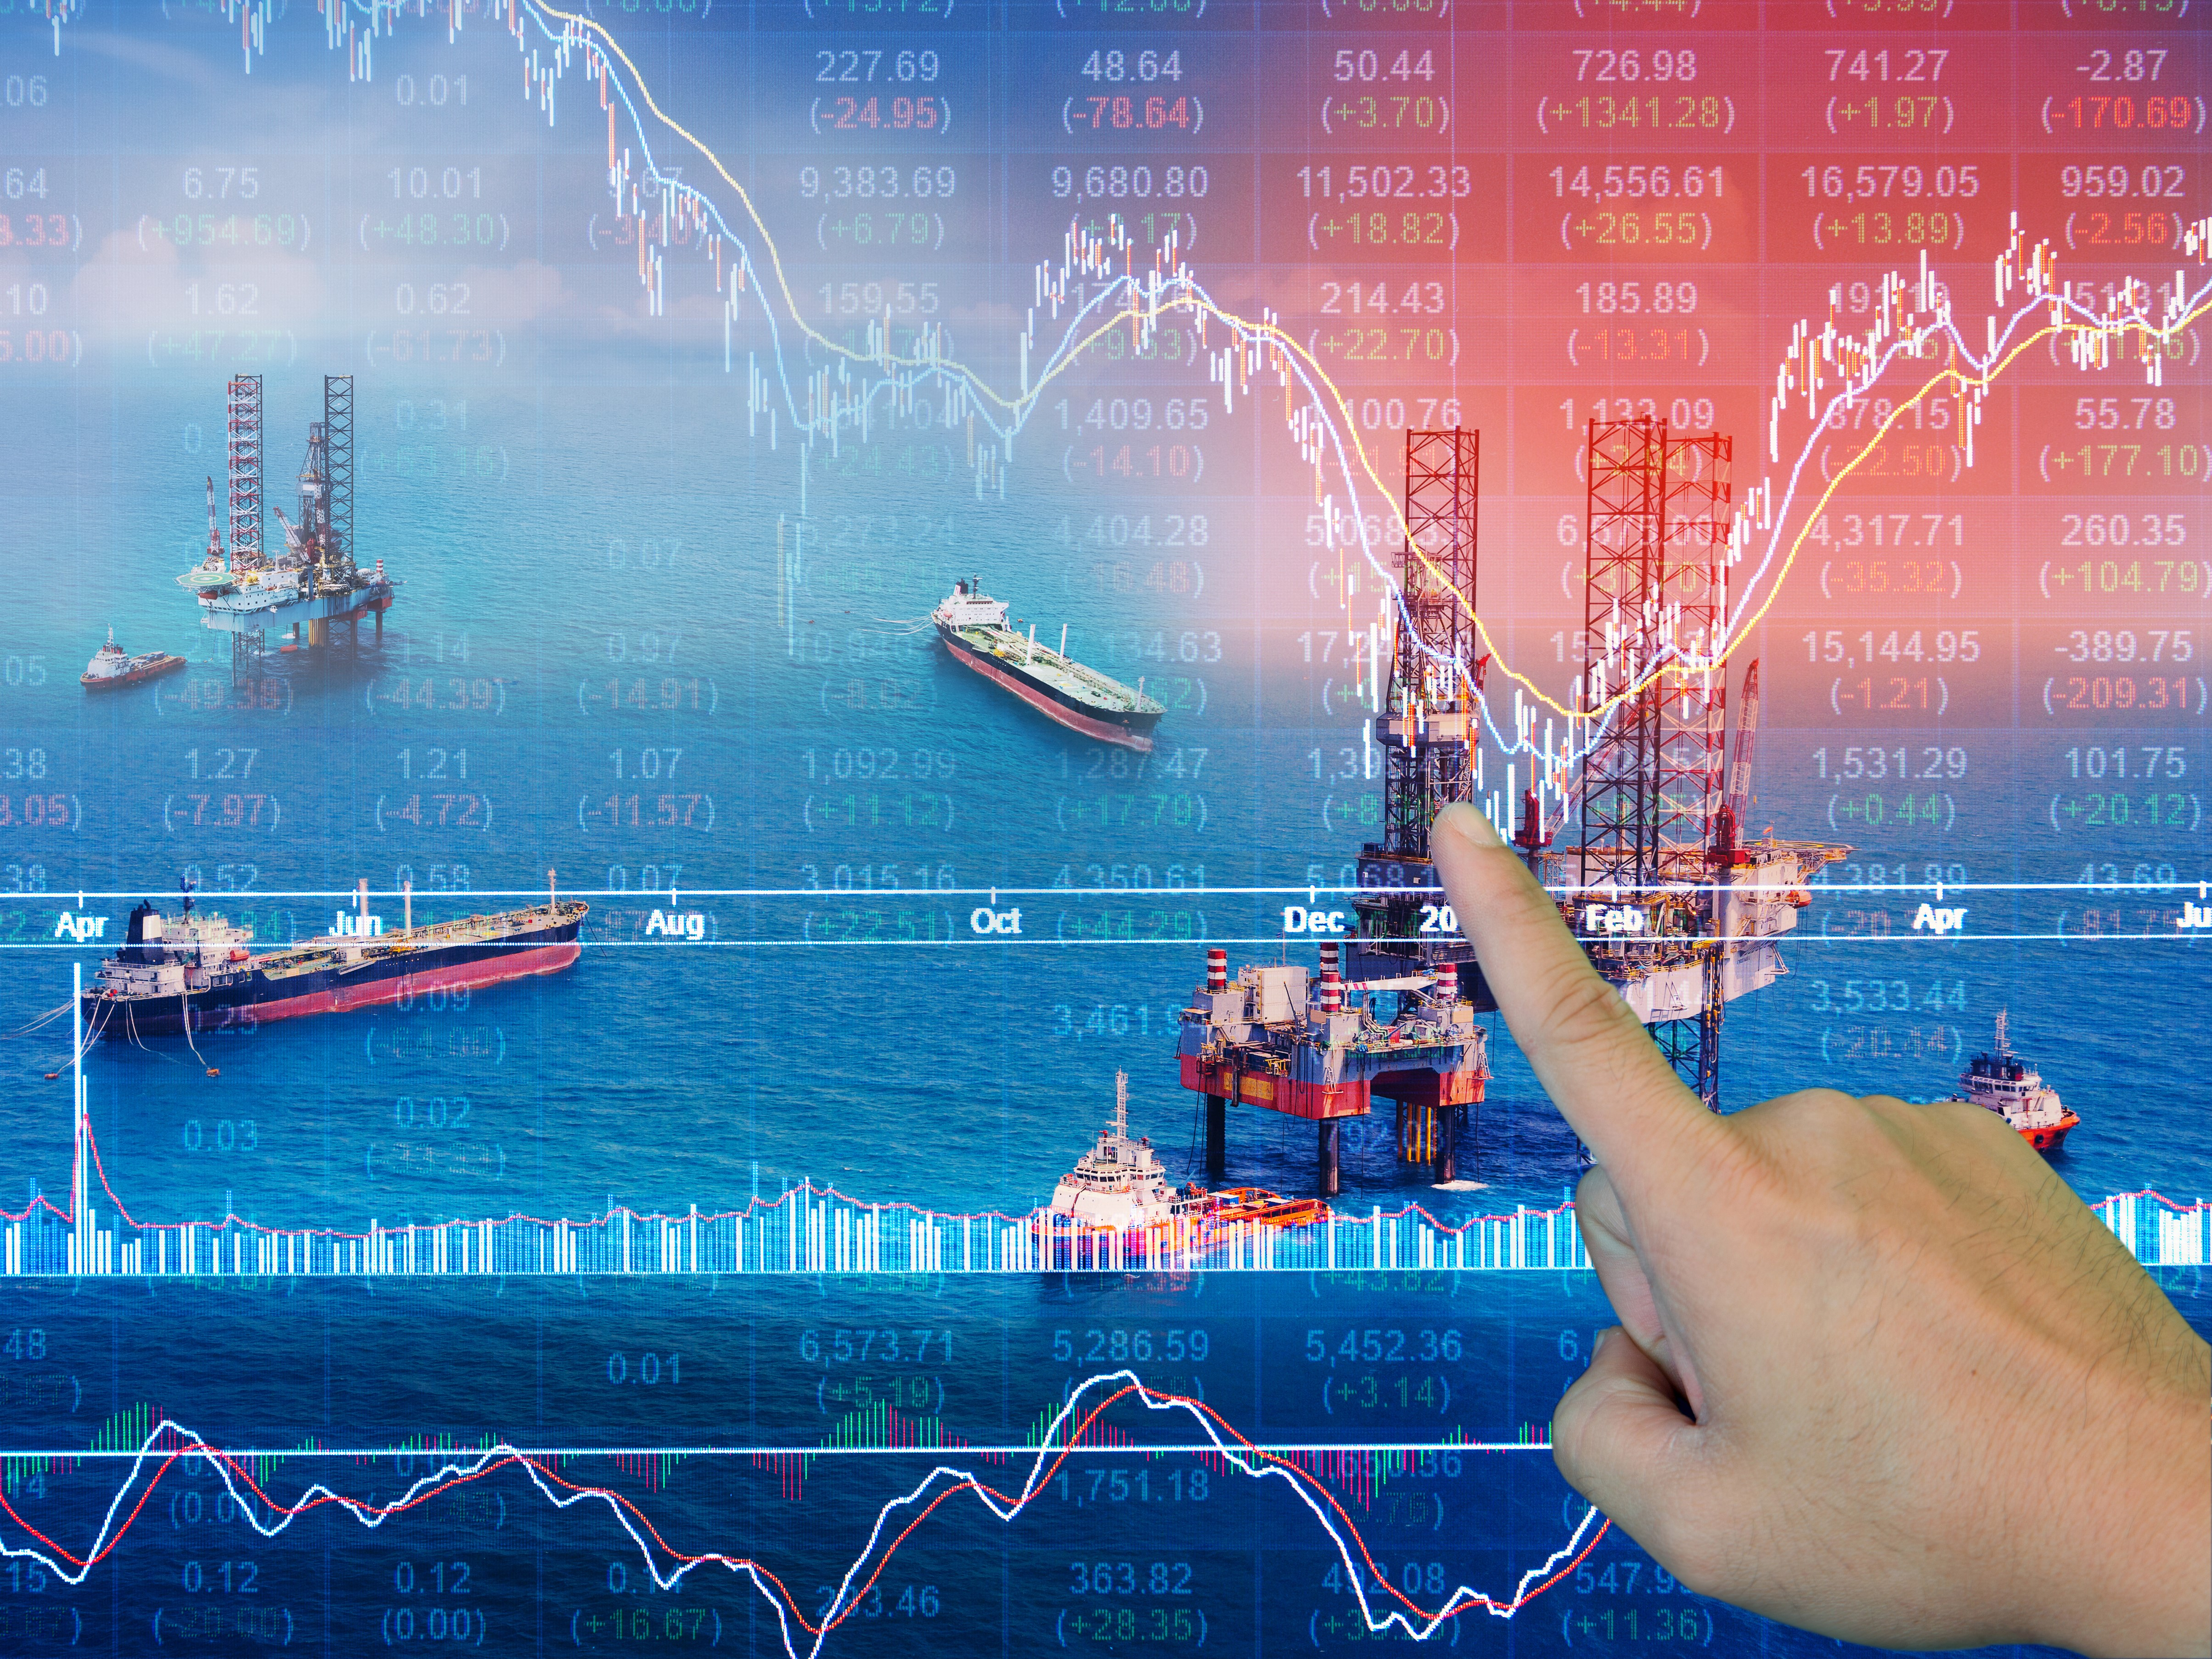 Stock market concept with oil rig in the gulf 2